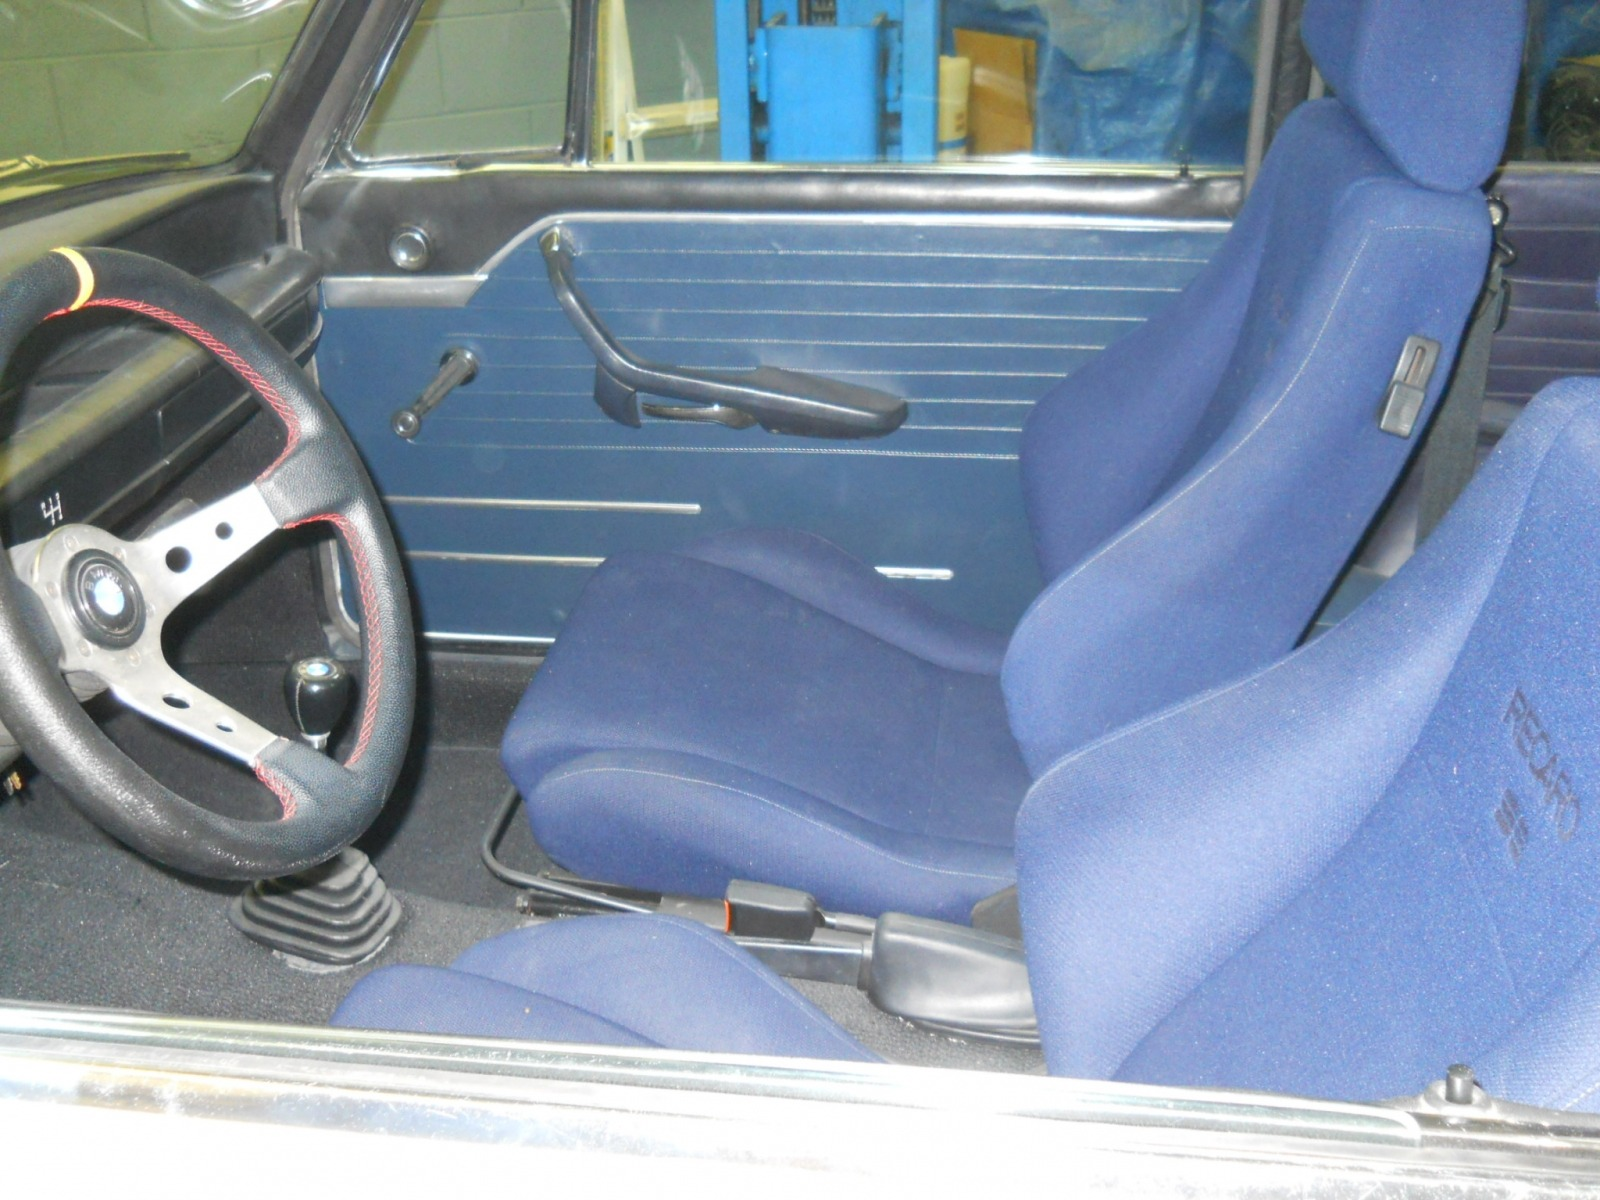 changed interior color to blue